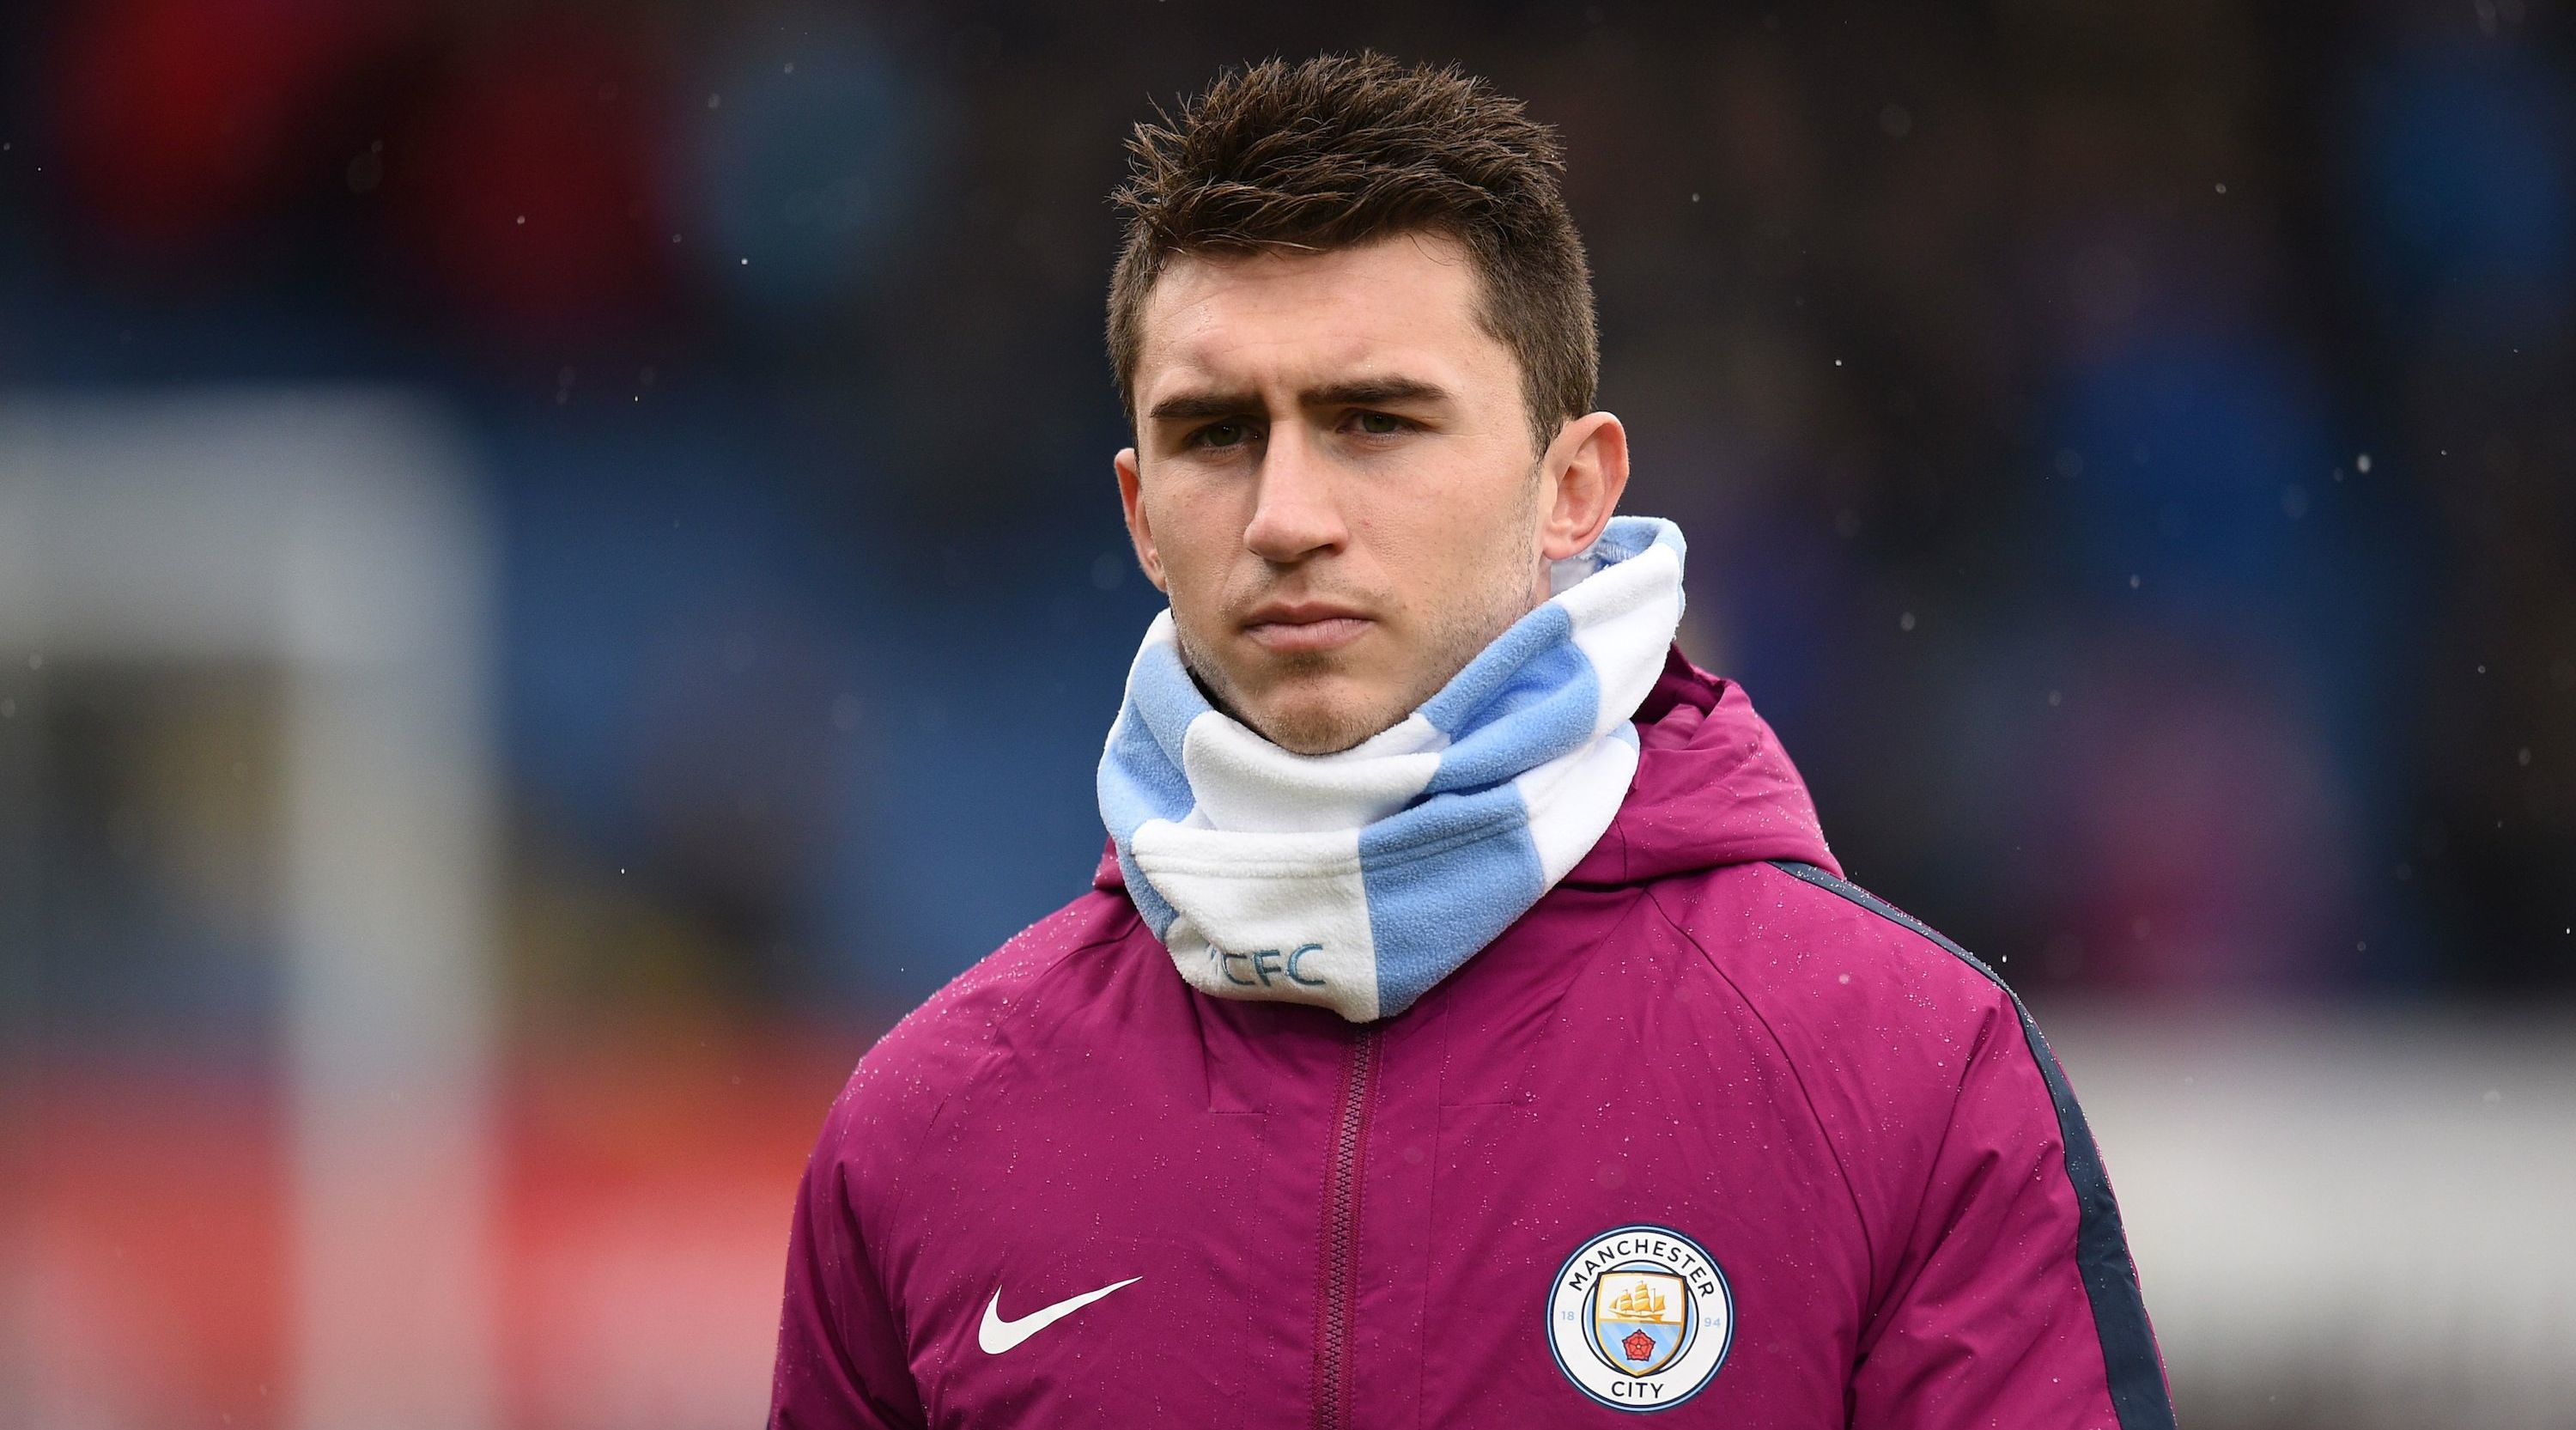 Manchester City's French defender Aymeric Laporte warms up for the English Premier League football match between Burnley and Manchester City at Turf Moor in Burnley, north west England on February 3, 2018. / AFP PHOTO / Oli SCARFF / RESTRICTED TO EDITORIAL USE. No use with unauthorized audio, video, data, fixture lists, club/league logos or 'live' services. Online in-match use limited to 75 images, no video emulation. No use in betting, games or single club/league/player publications. / (Photo credit should read OLI SCARFF/AFP/Getty Images)